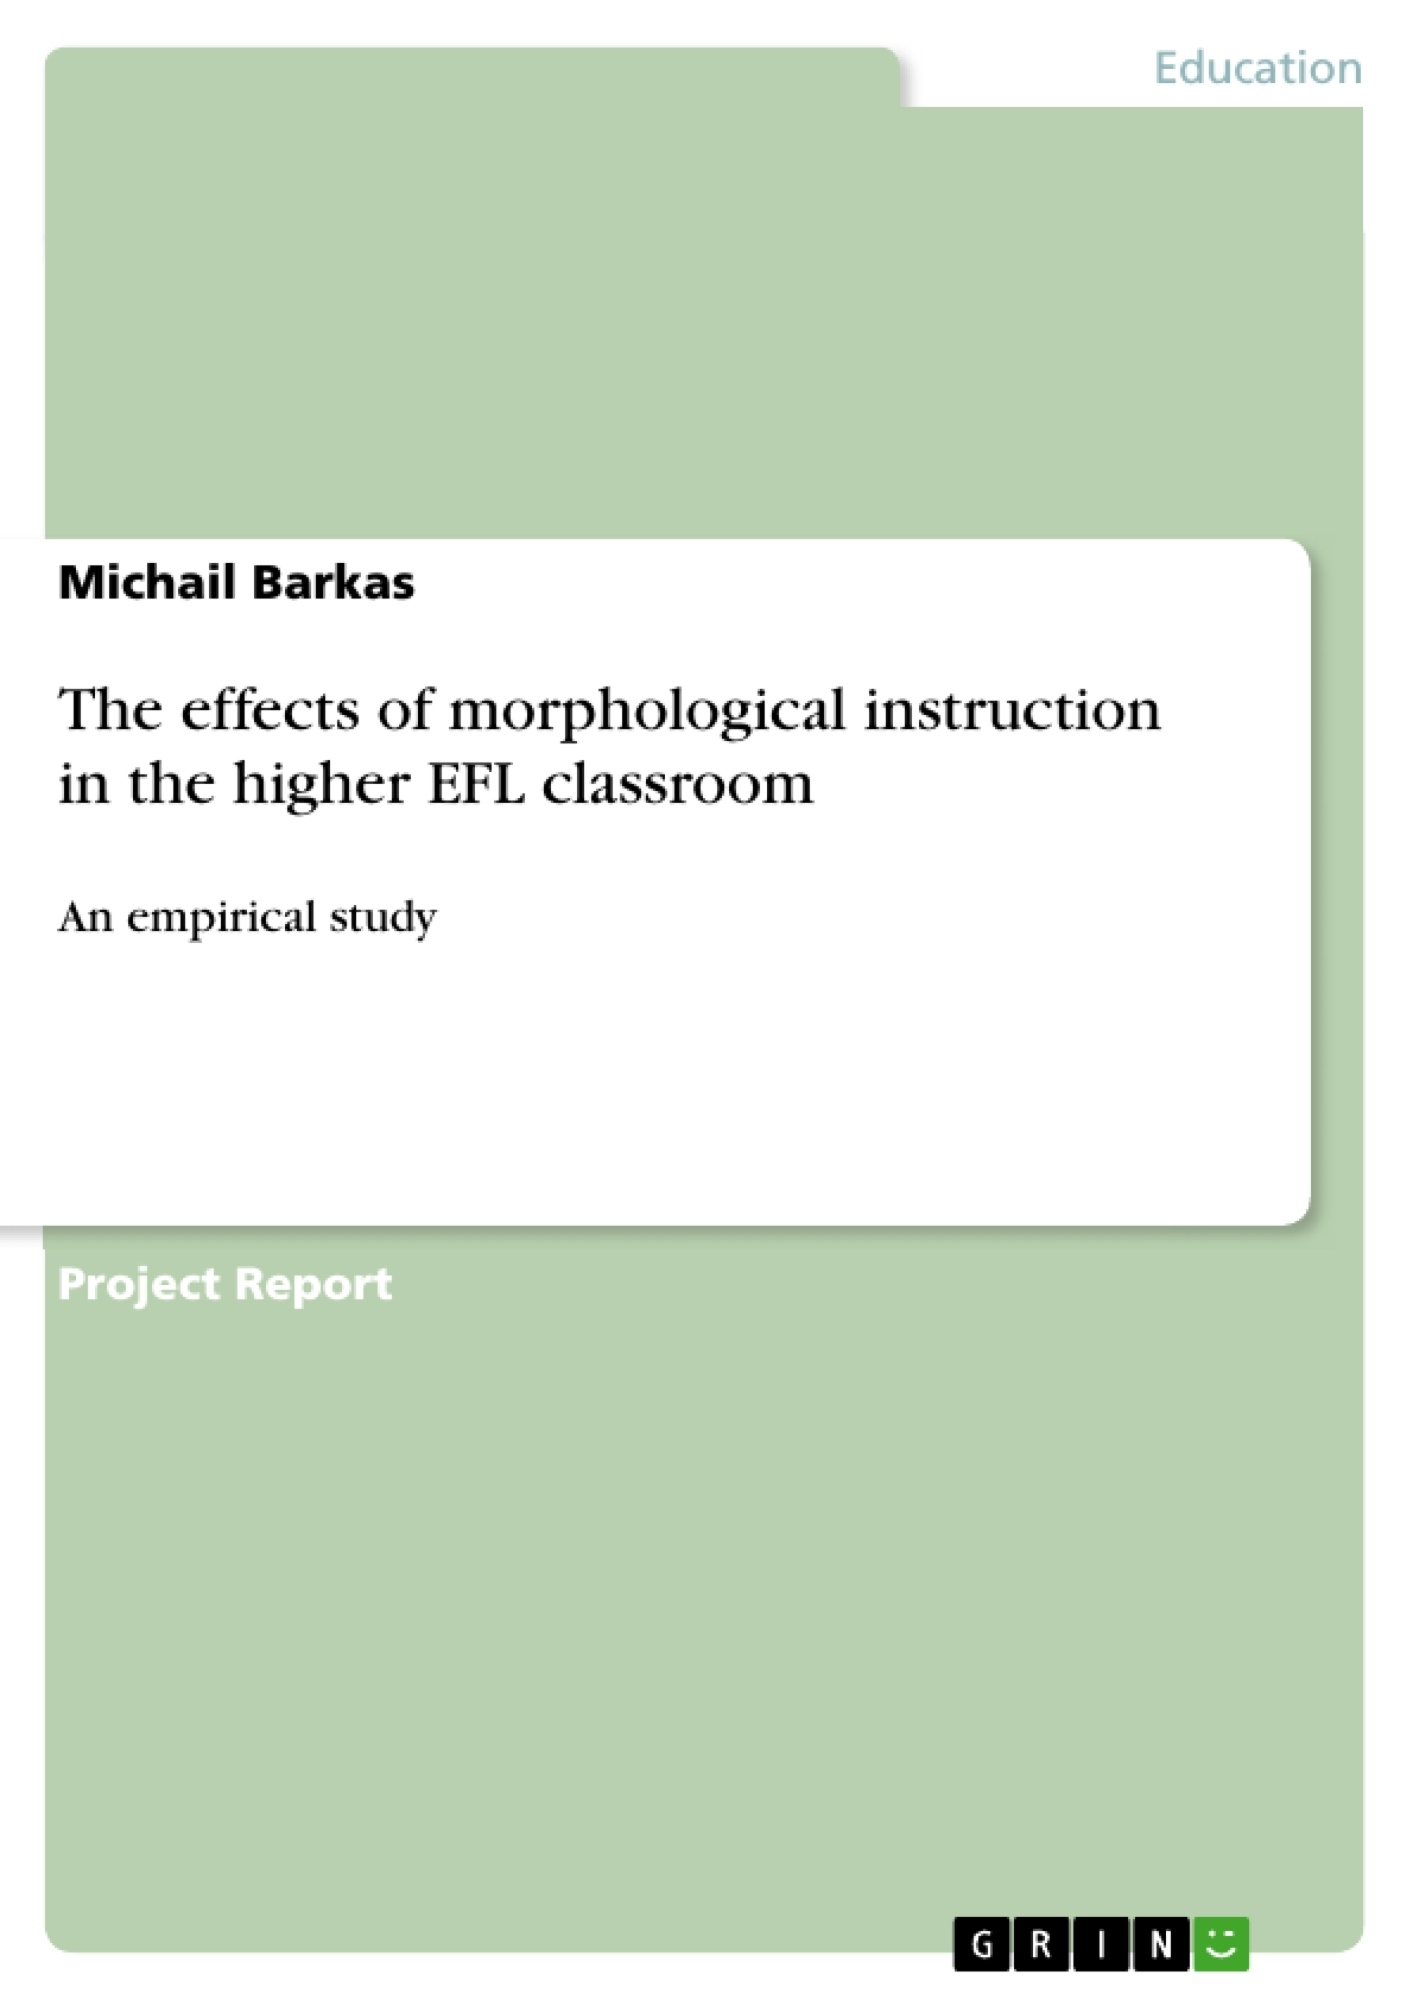 Title: The effects of morphological instruction in the higher EFL classroom